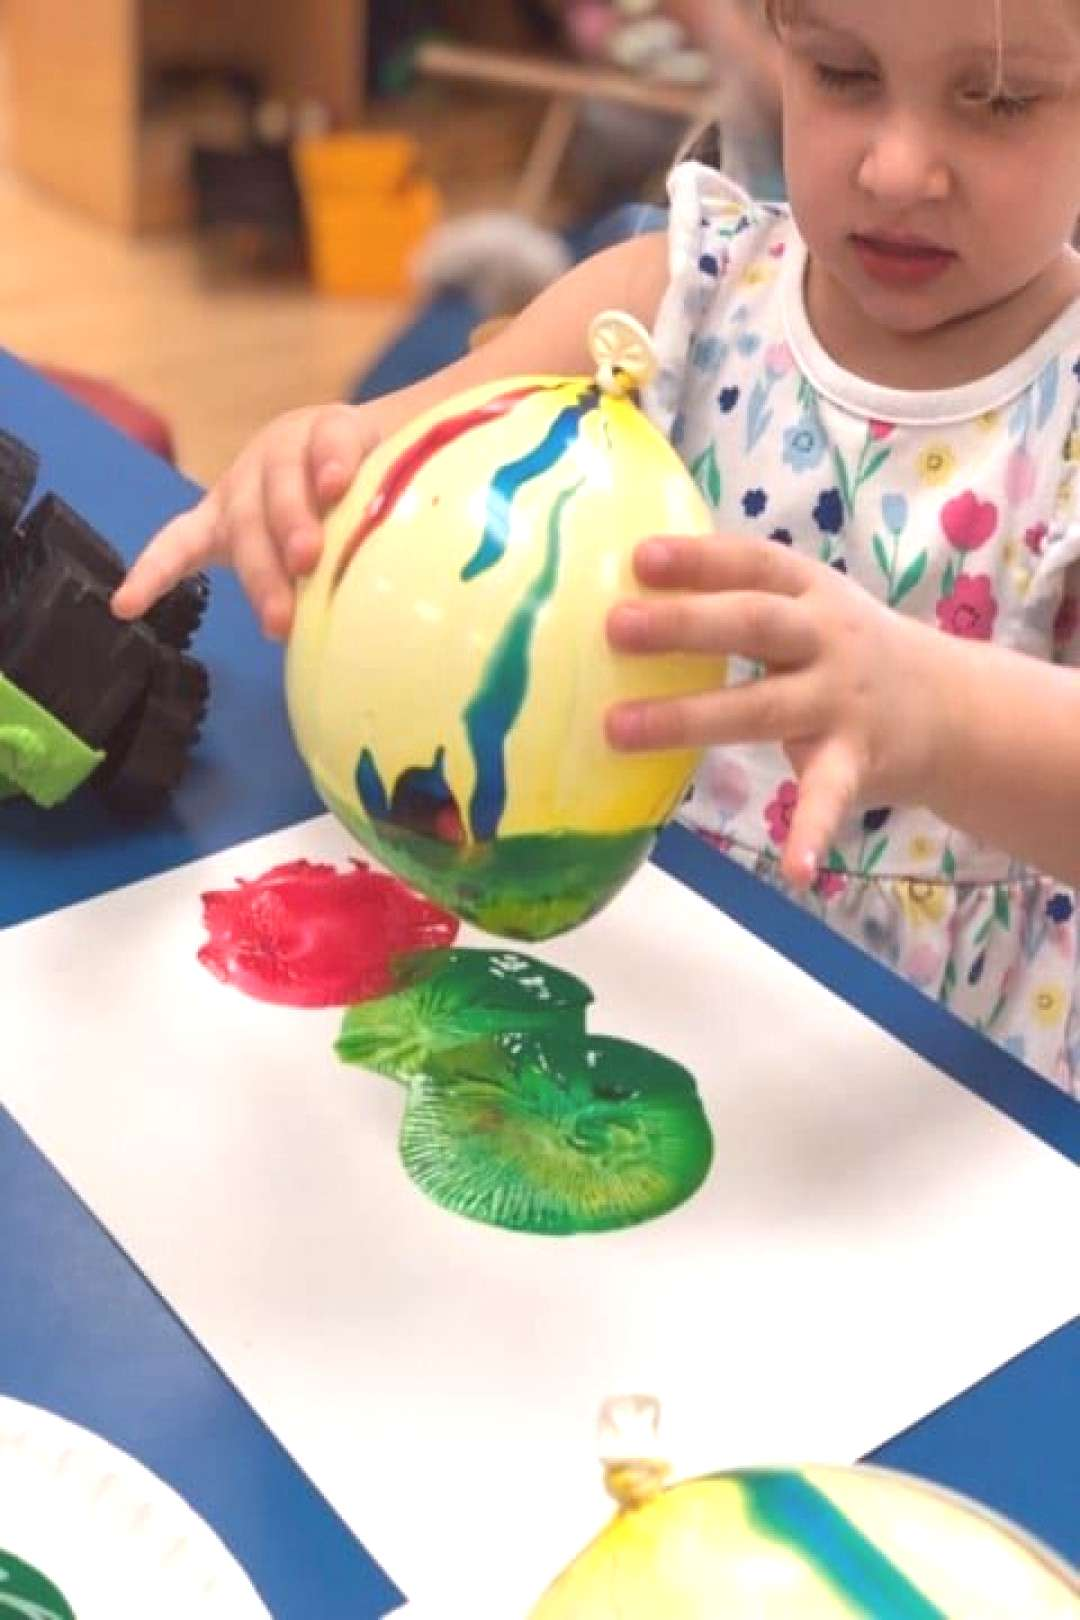 Loved by children of all ages, The Very Hungry Caterpillar is an excellent support for learning in